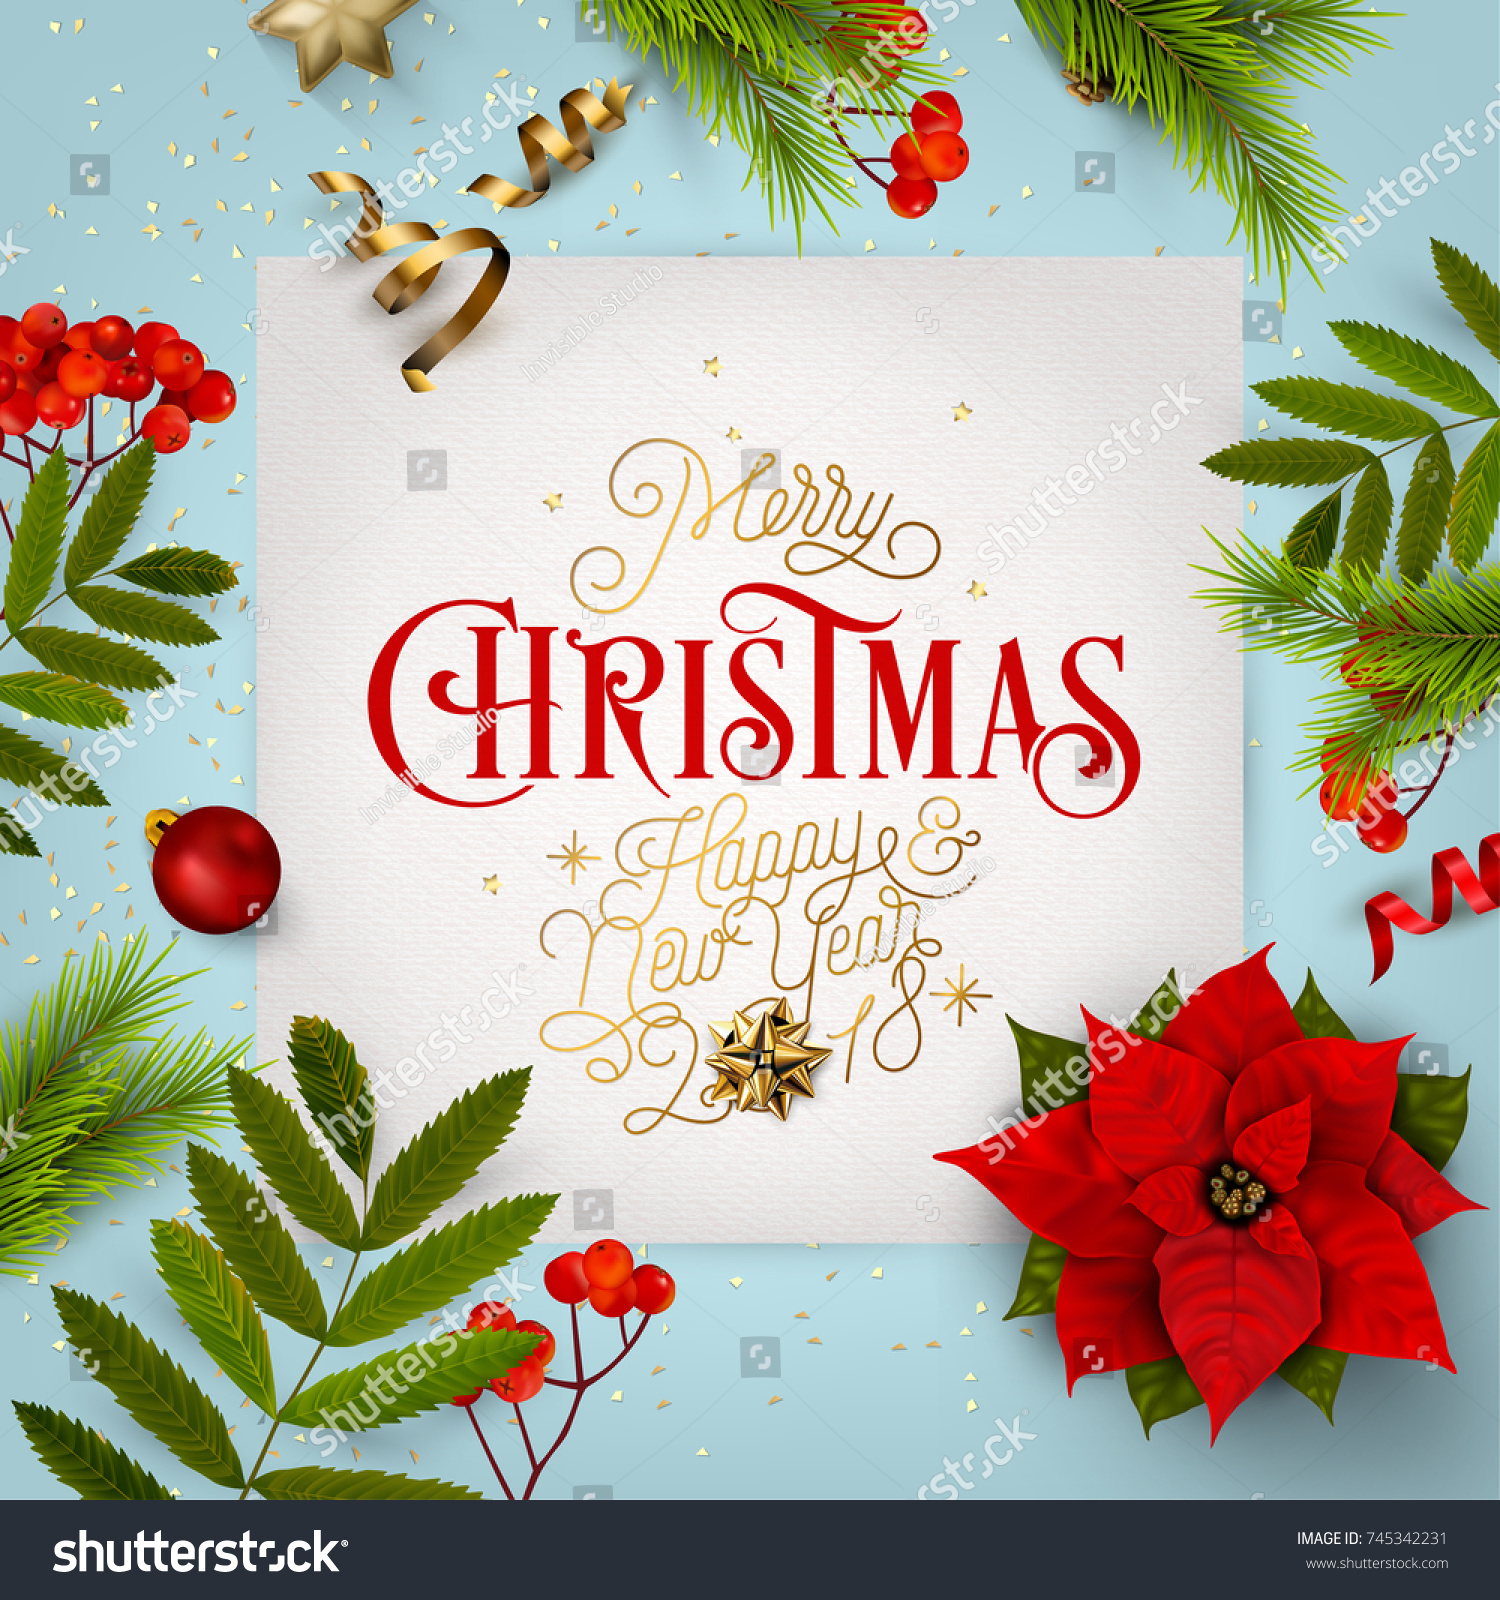 Merry Christmas Everyone Vintage Background Typography Stock Vector